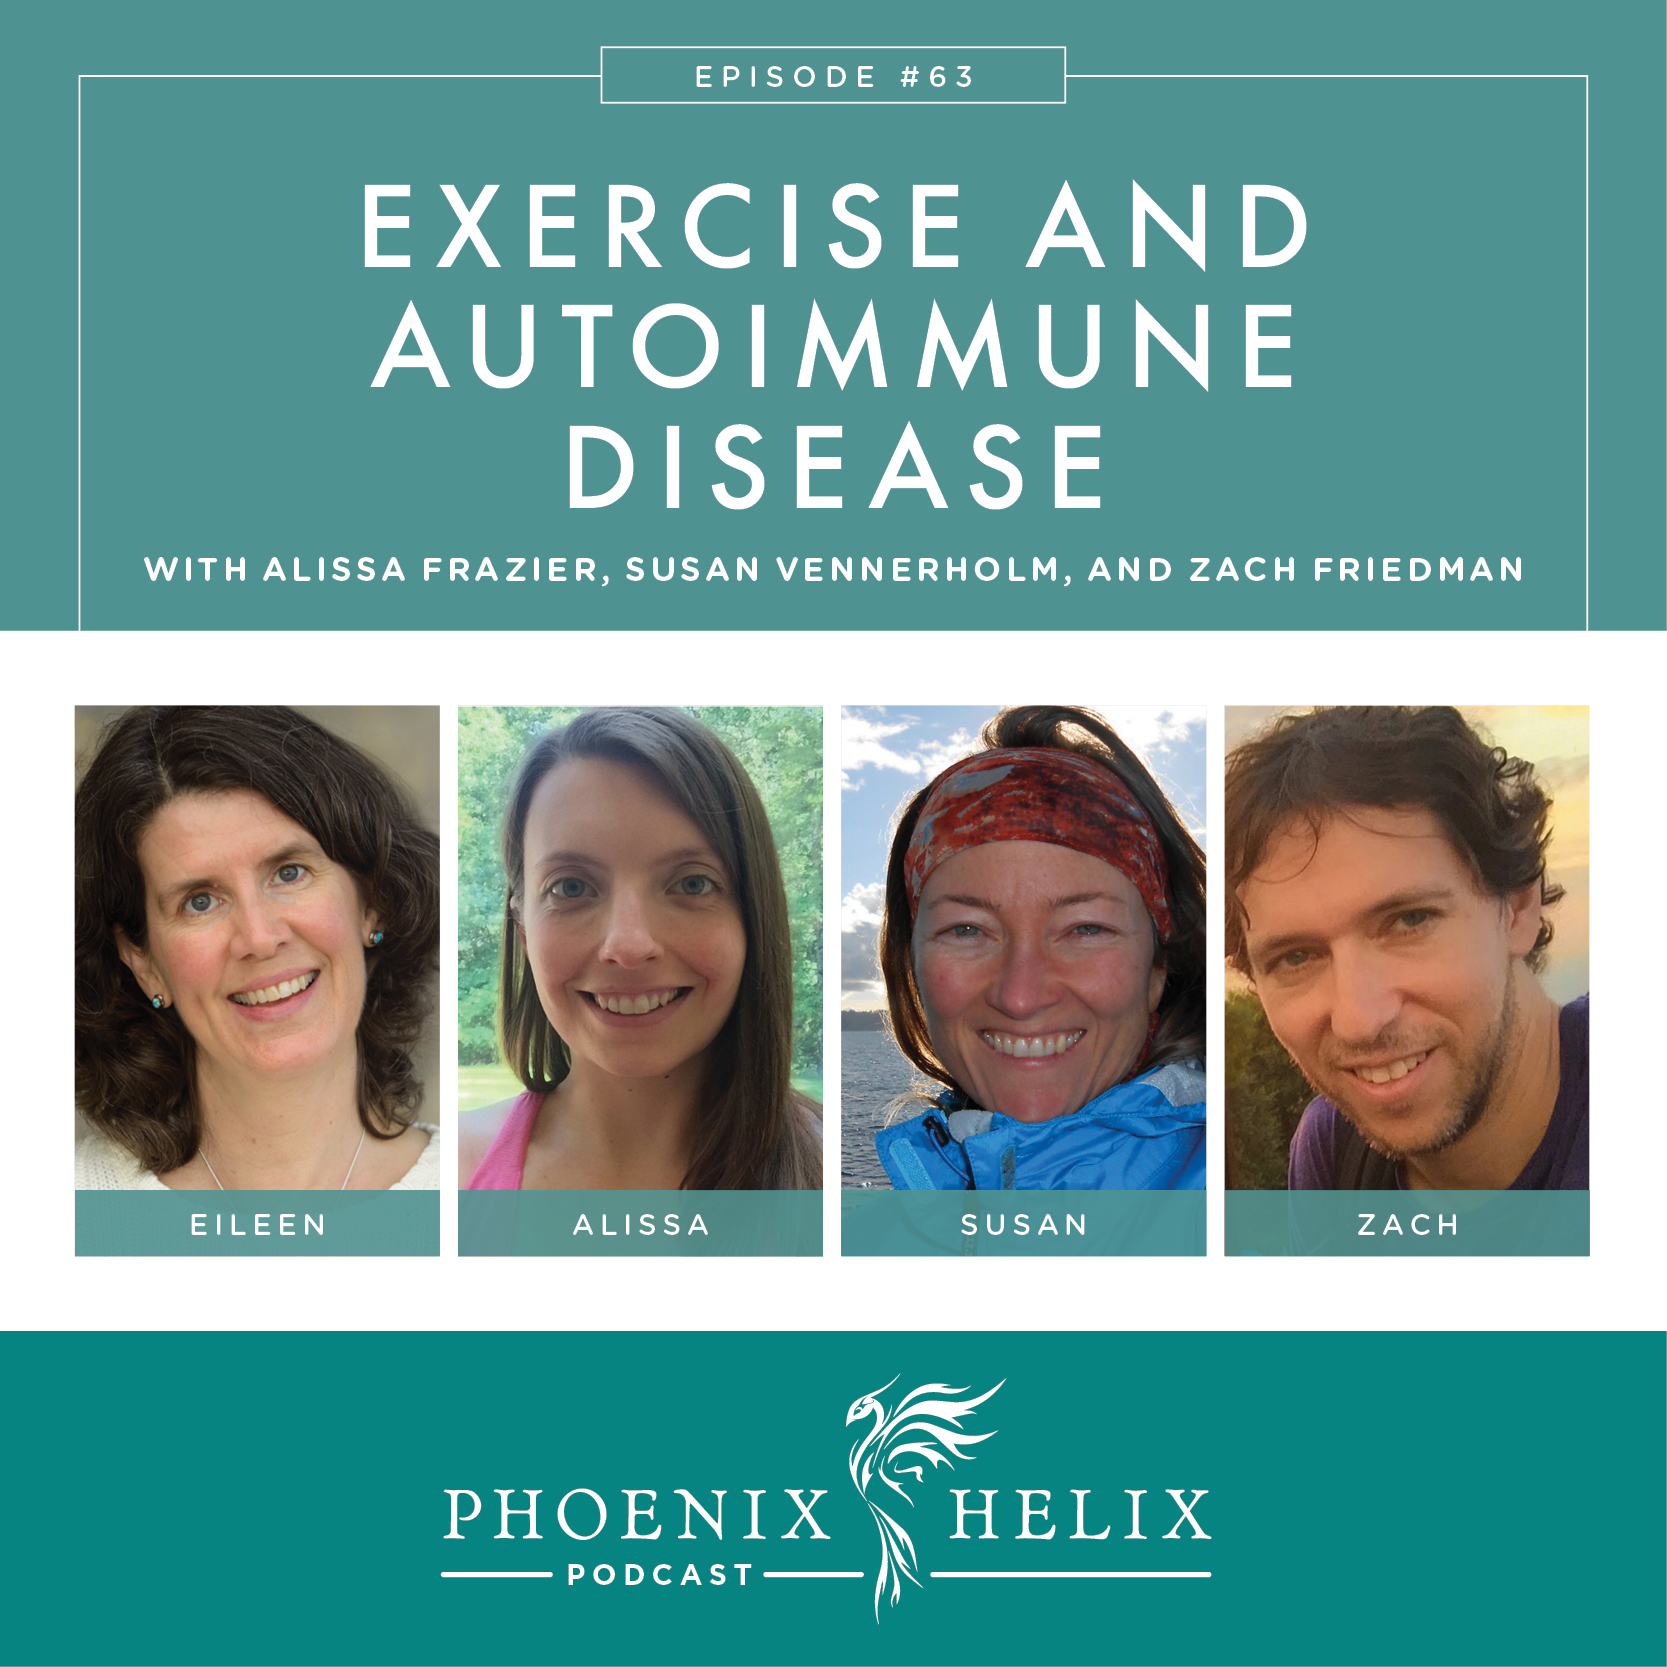 Best of the Phoenix Helix Podcast: Exercise and Autoimmune Disease